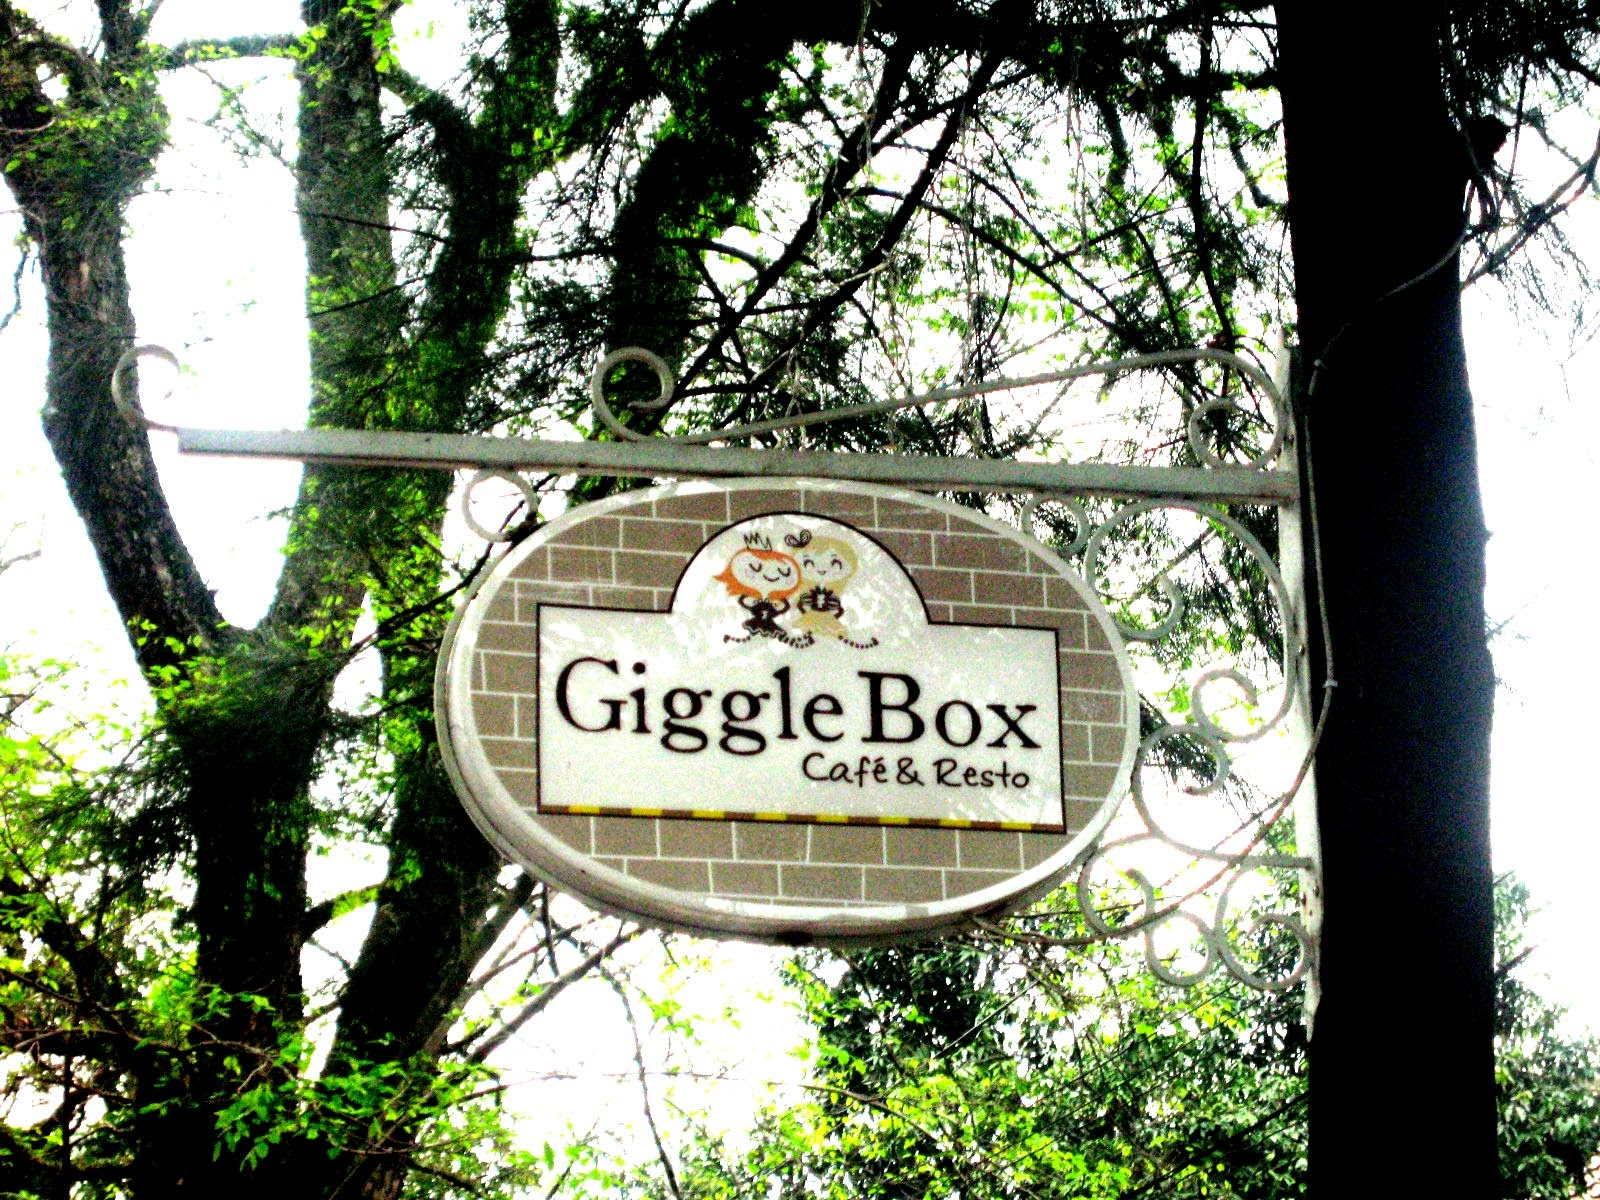 Giggle Box Cafe & Resto